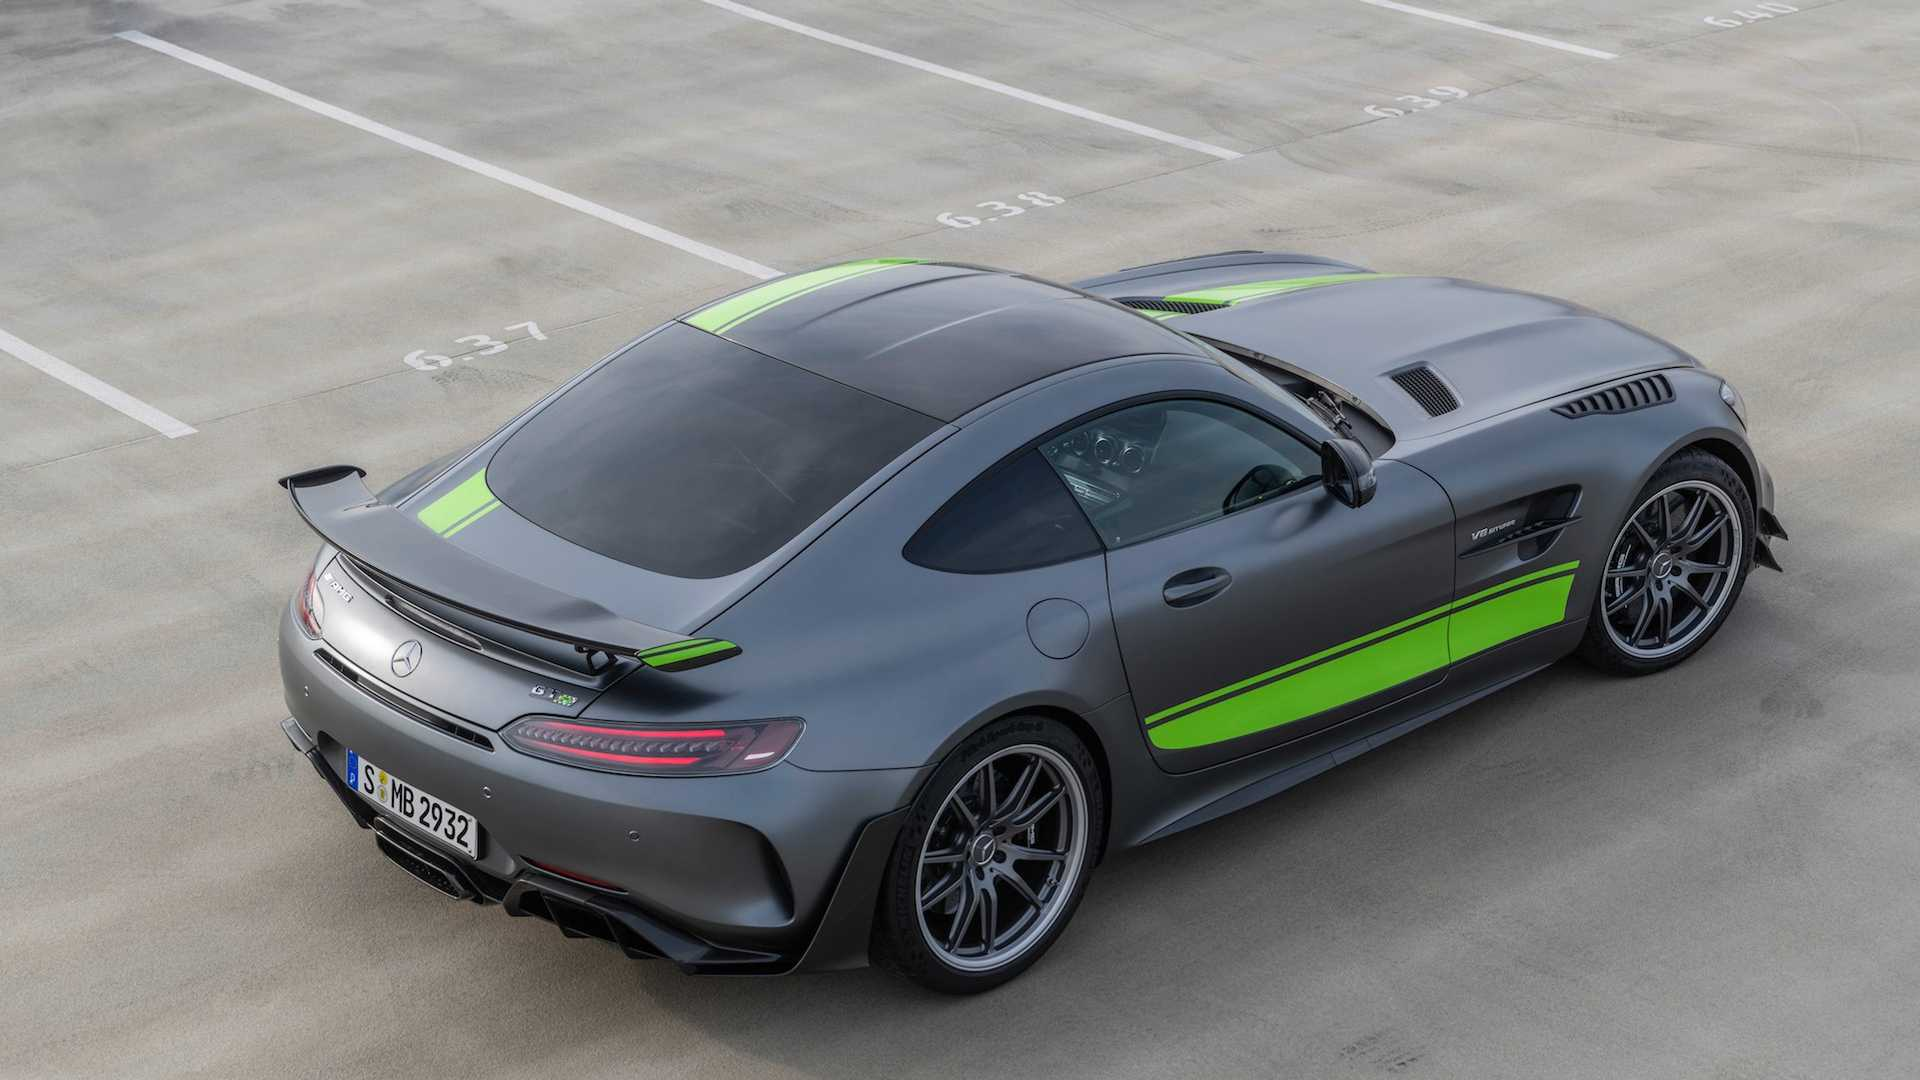 2020 Mercedes Amg Gt R Pro Leads Facelifted Lineup With